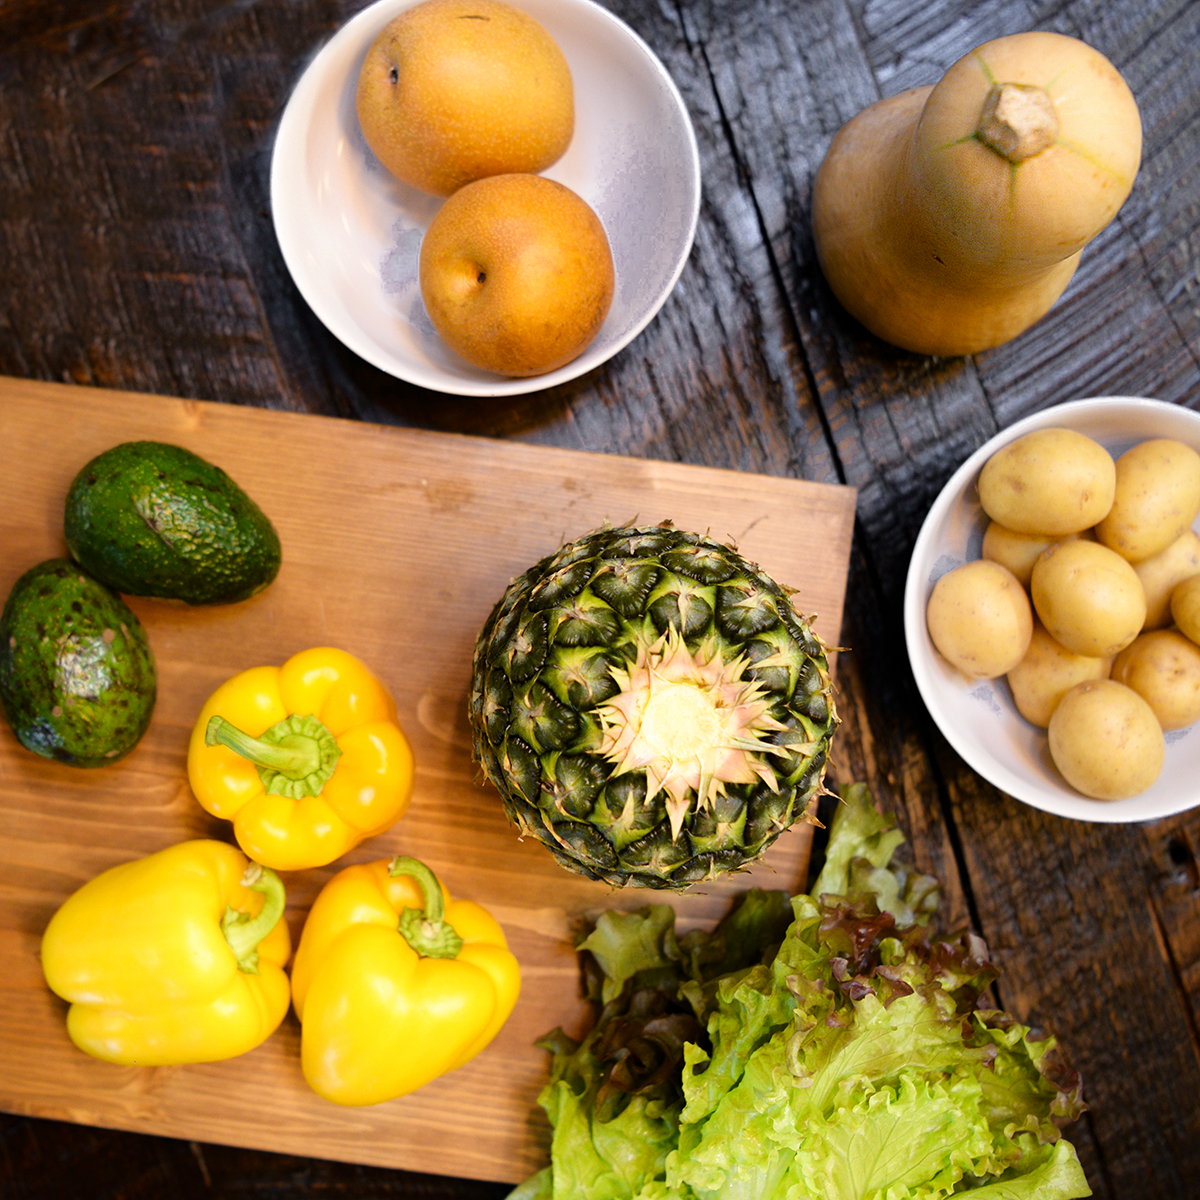 October 26, 2018 - Asian Pears, Butternut Squash, Potatoes, Pineapple, Peppers, Avocados, LettuceFind recipes here